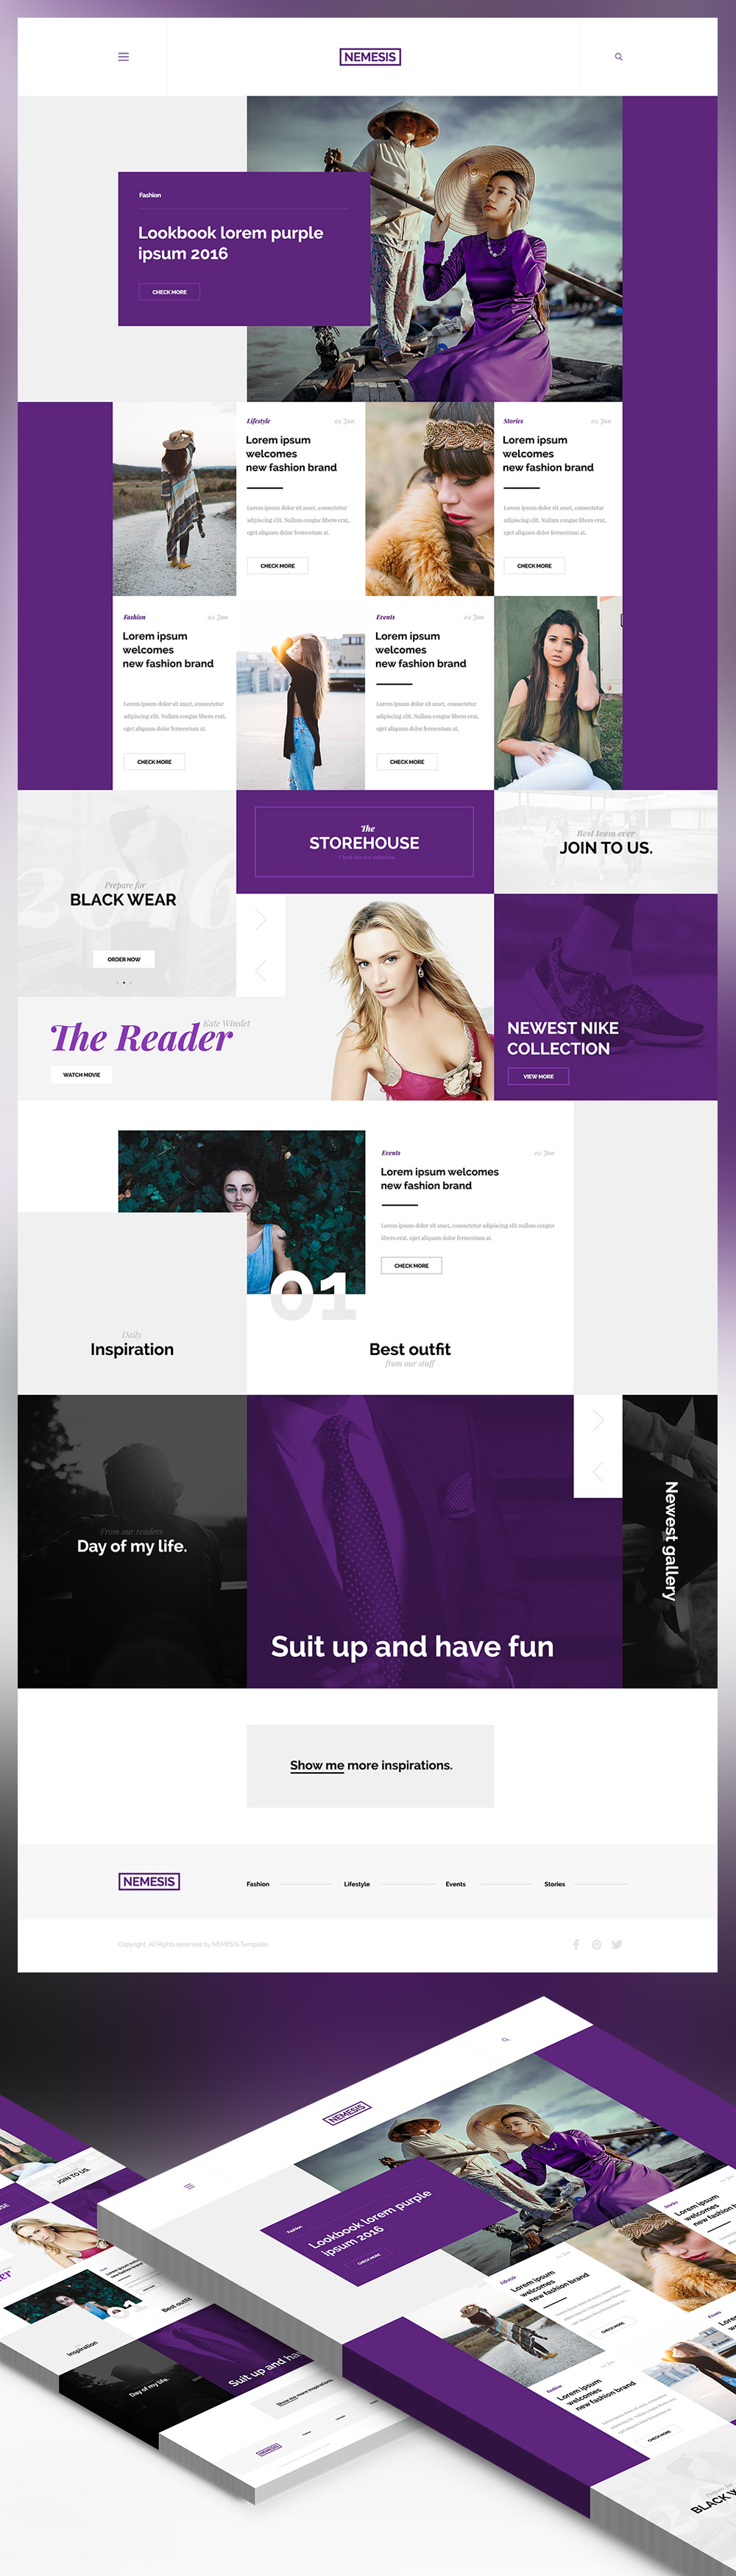 Blog Website Templates Nice Creative Fashion Magazine Blog Website Template Free Psd